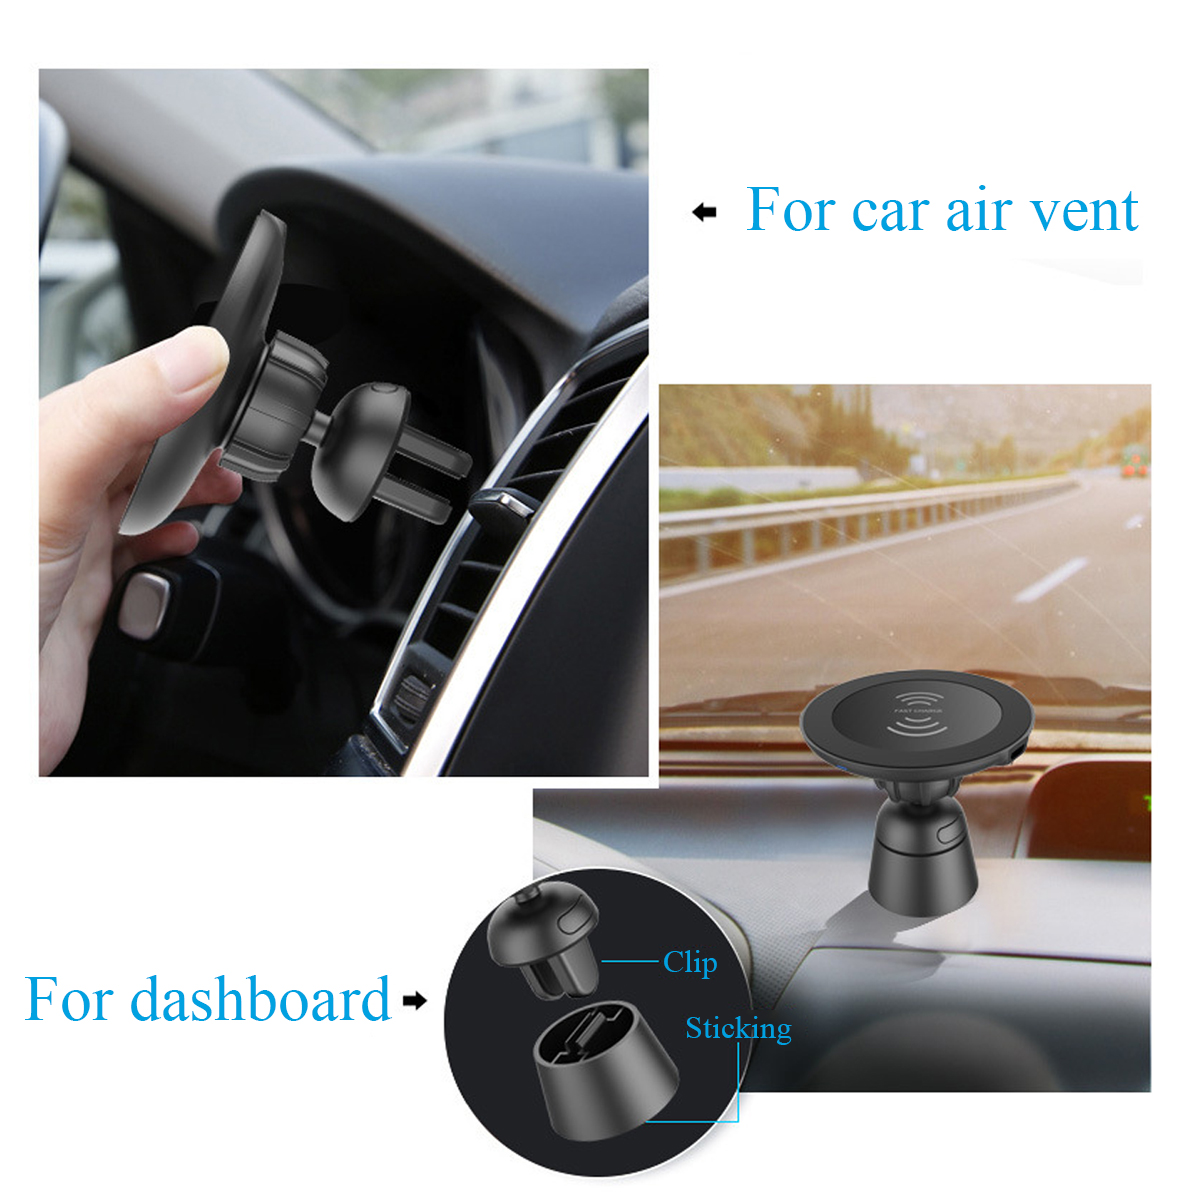 2 in 1 Qi Wireless Charger Car Air Vent Dashboard Phone Holder Magnetic Mount